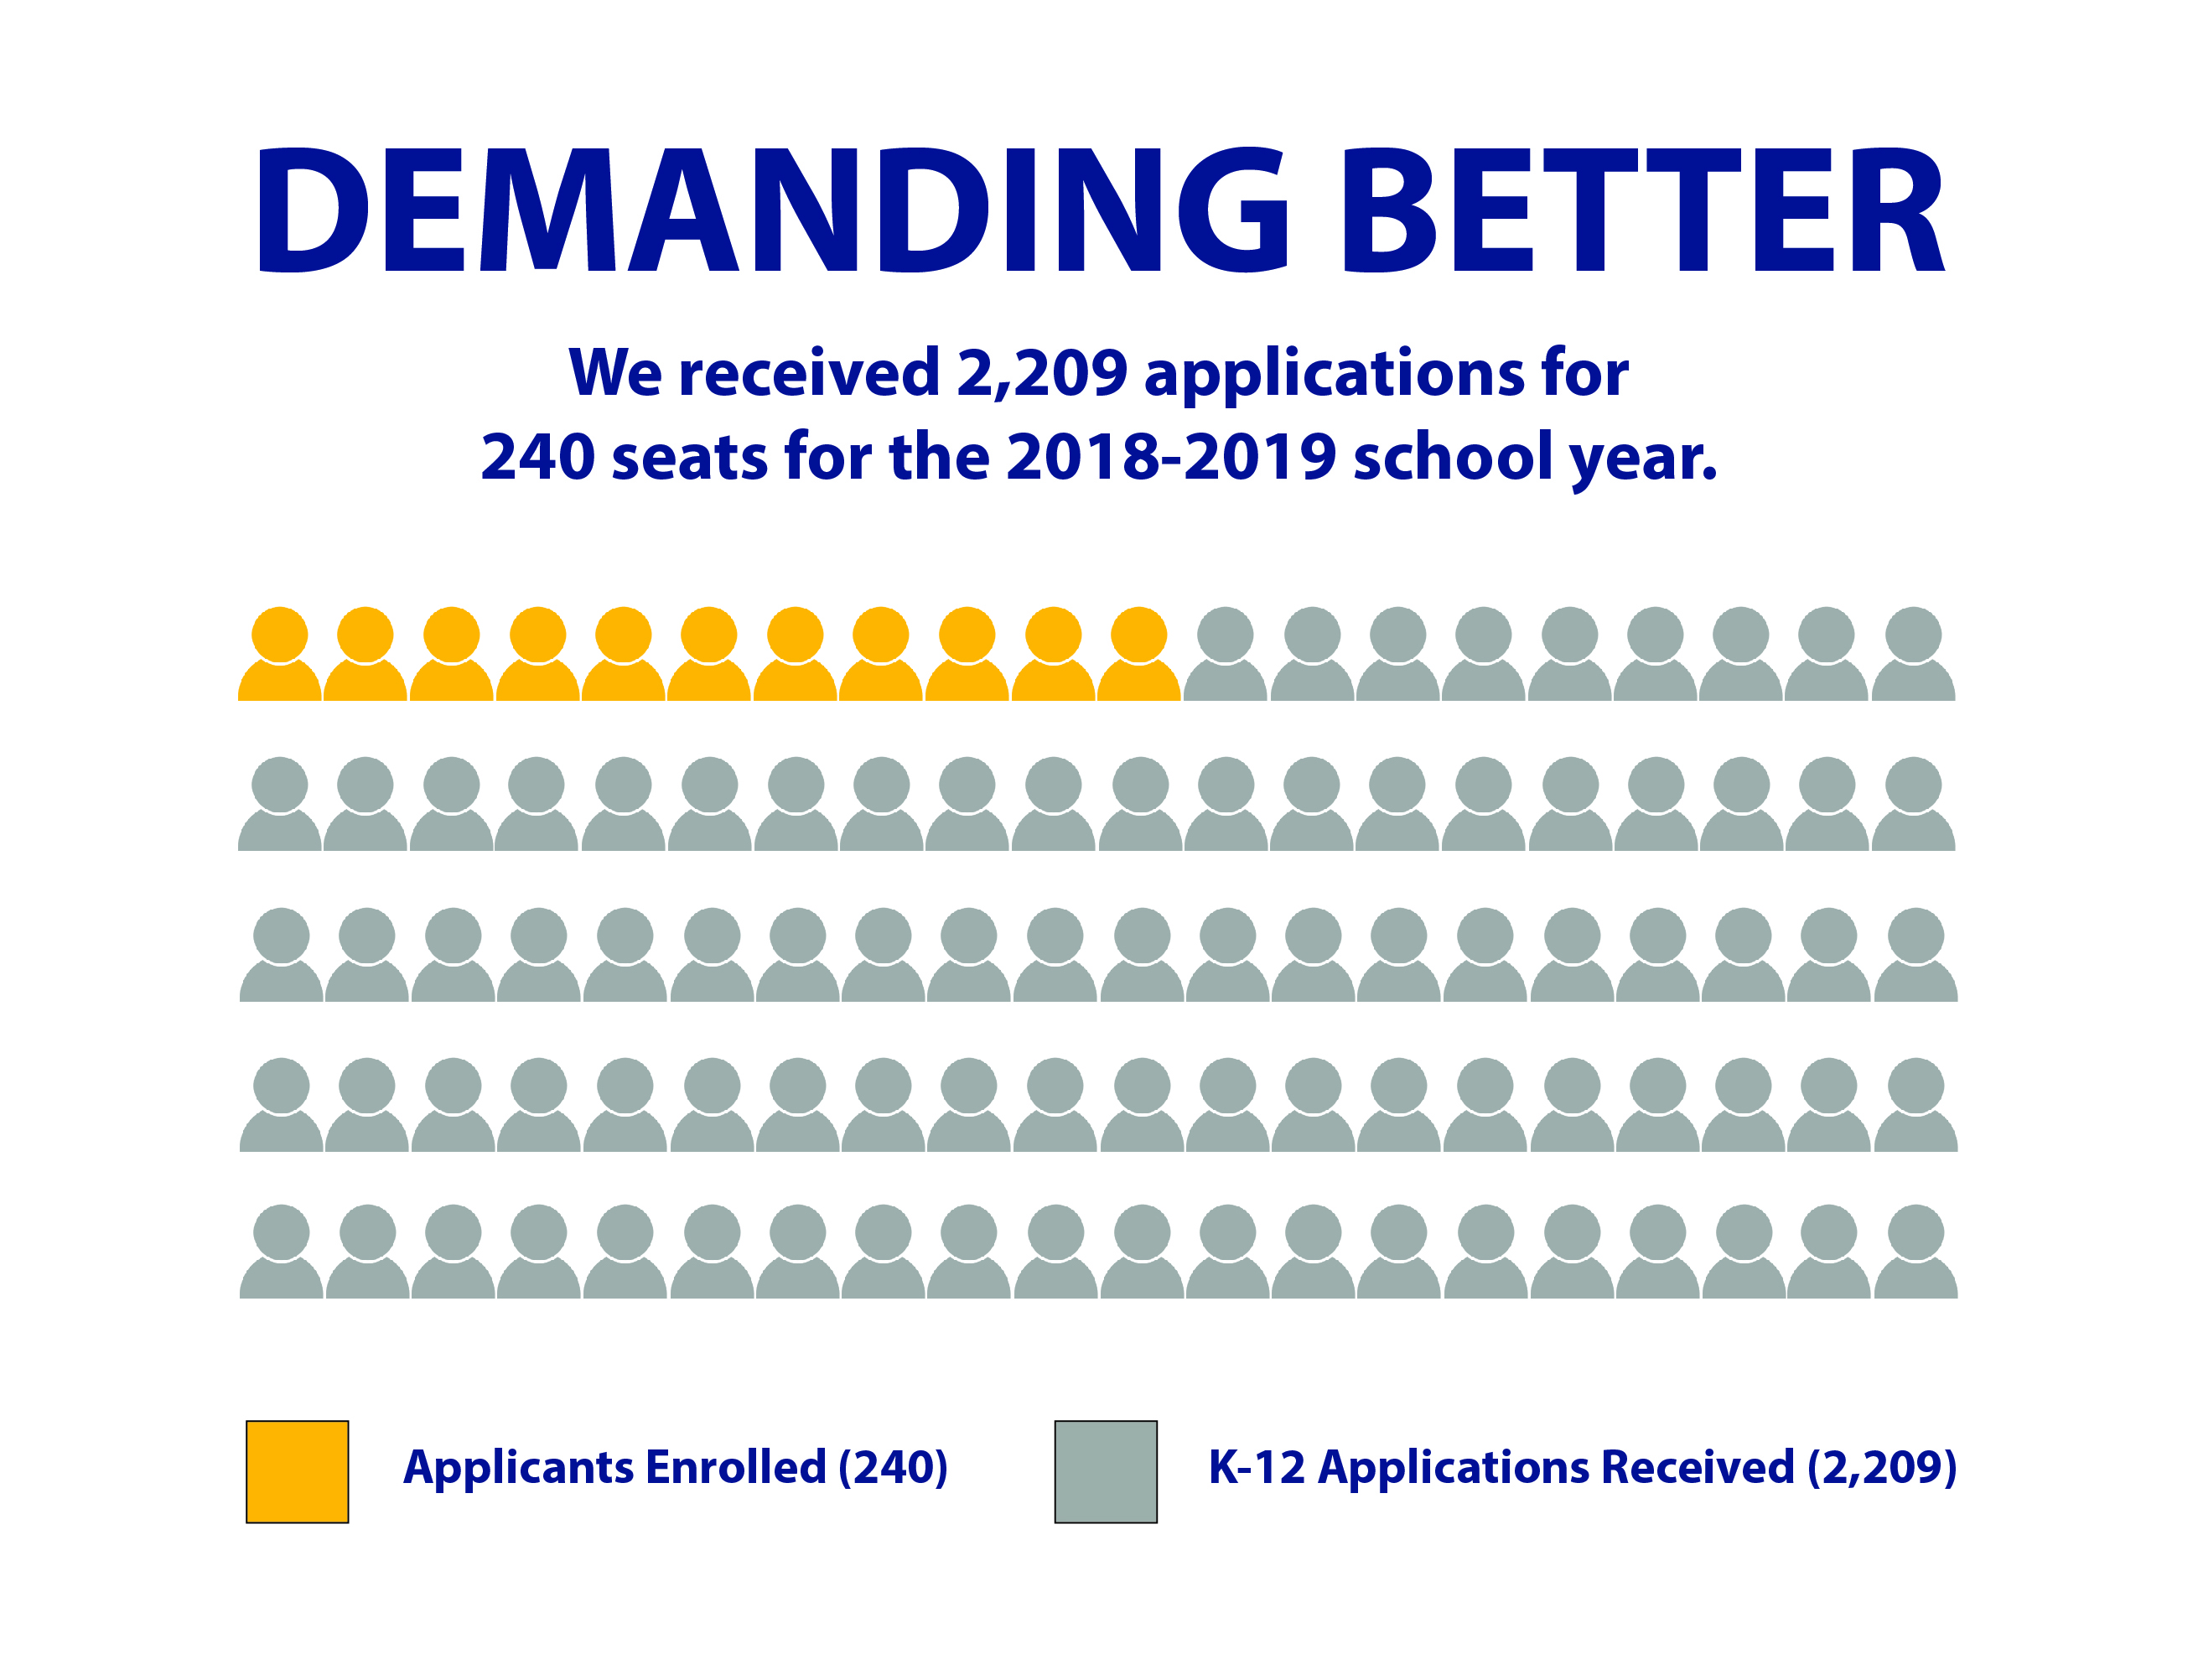 Graphic visually representing the number of applications BVP received versus the number of open seats for the 2018-2019 school year.